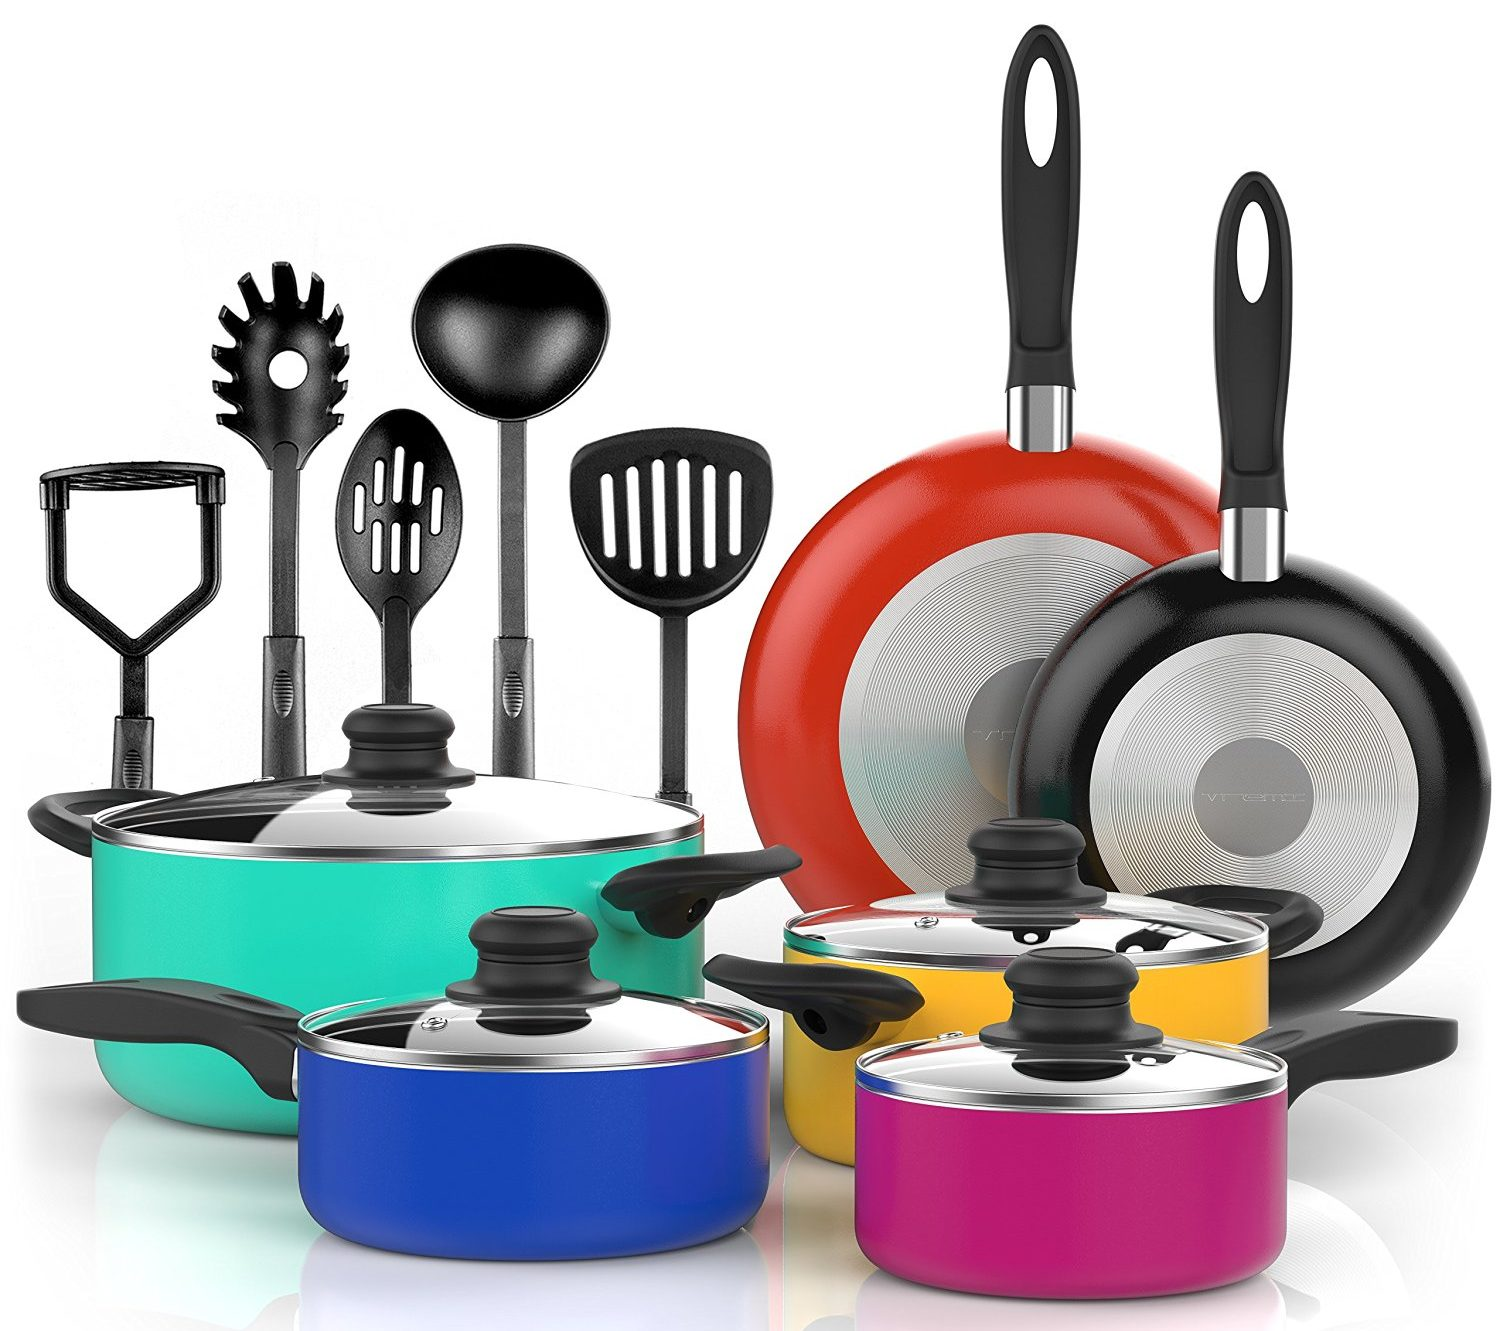 Tramontina Nonstick Cookware Reviews : Ceramic And Hard Anodized